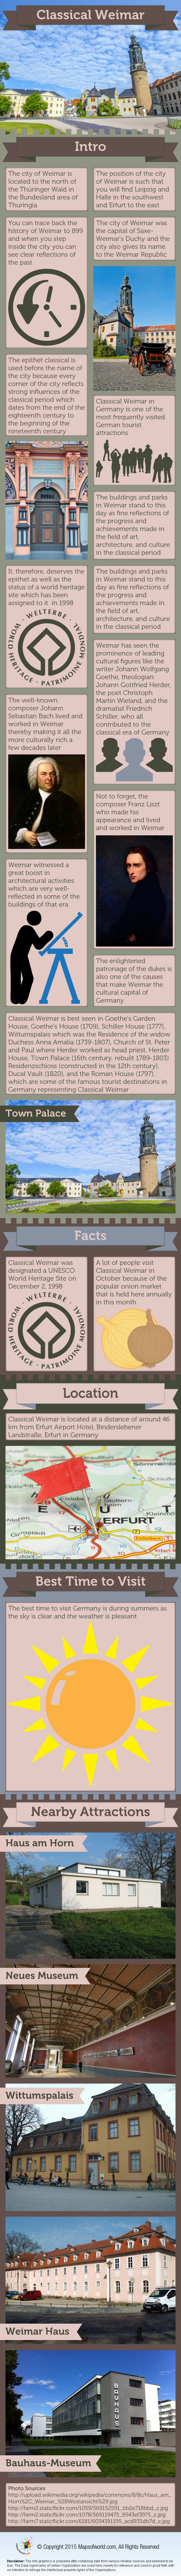 Classical Weimar - Infographic